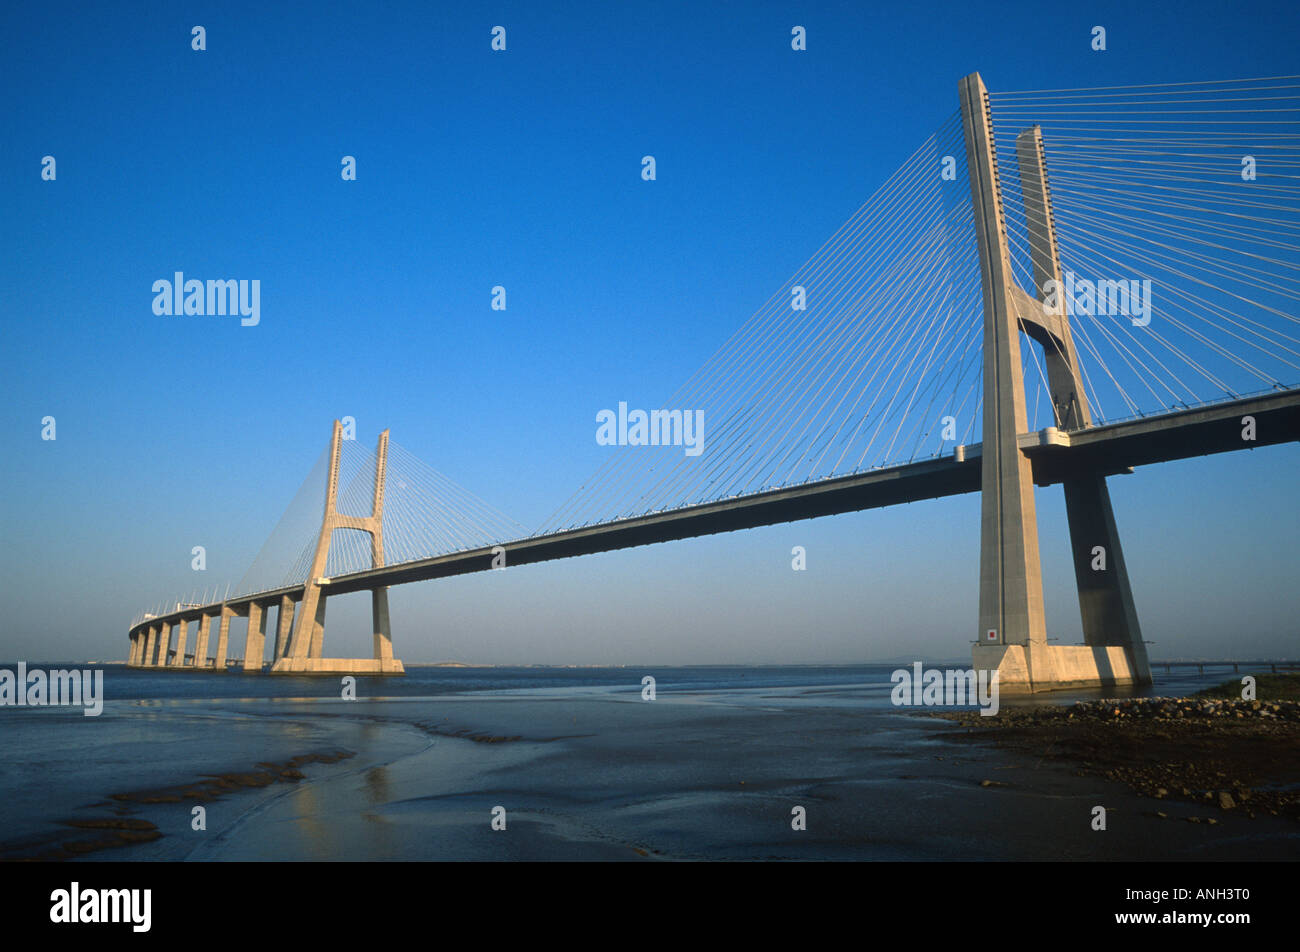 Vasco da Gama Bridge, Lisbon, Portugal - Stock Image